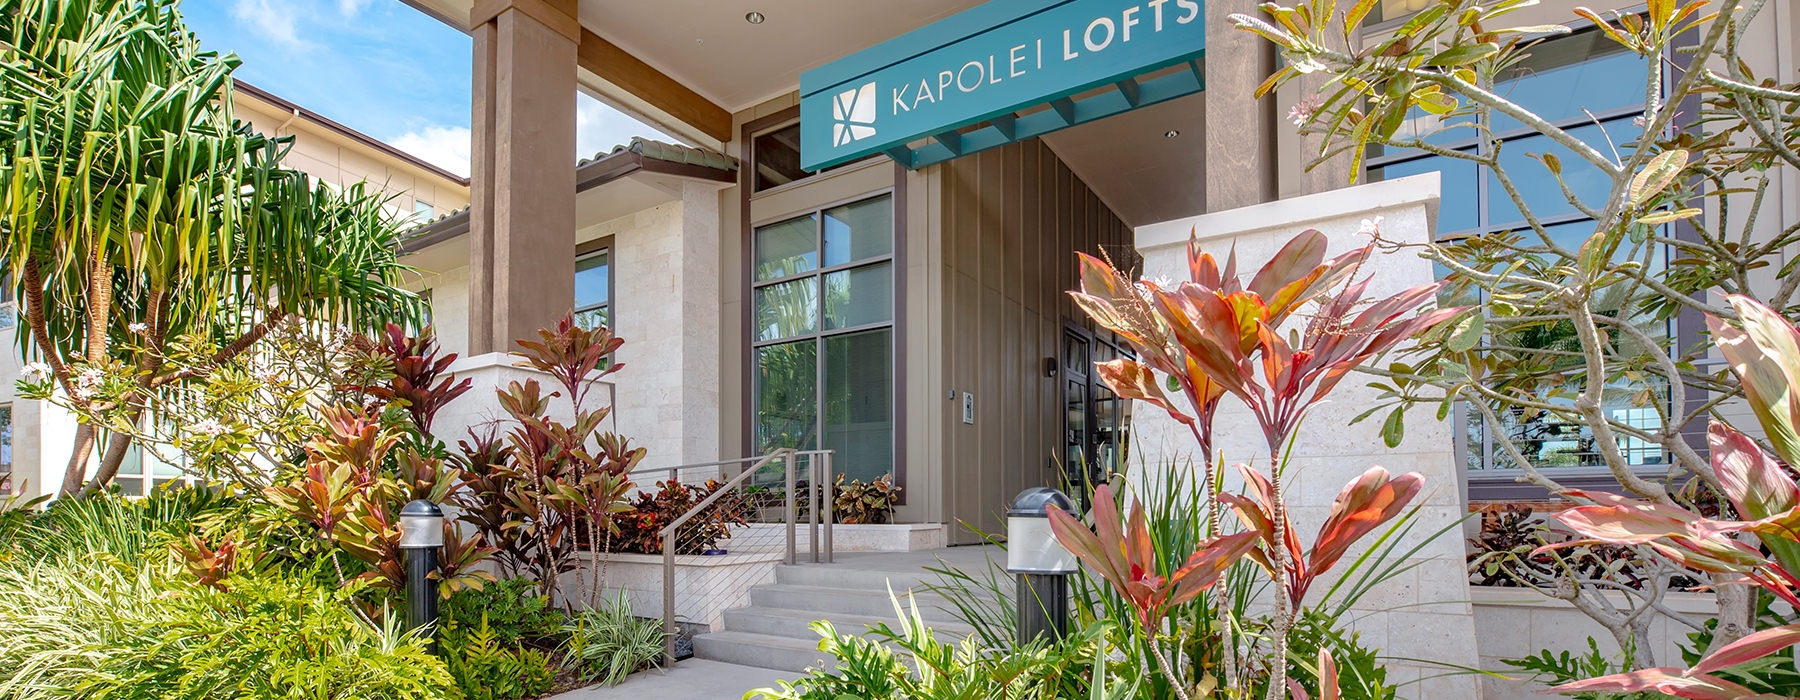 front office of Kapolei Lofts